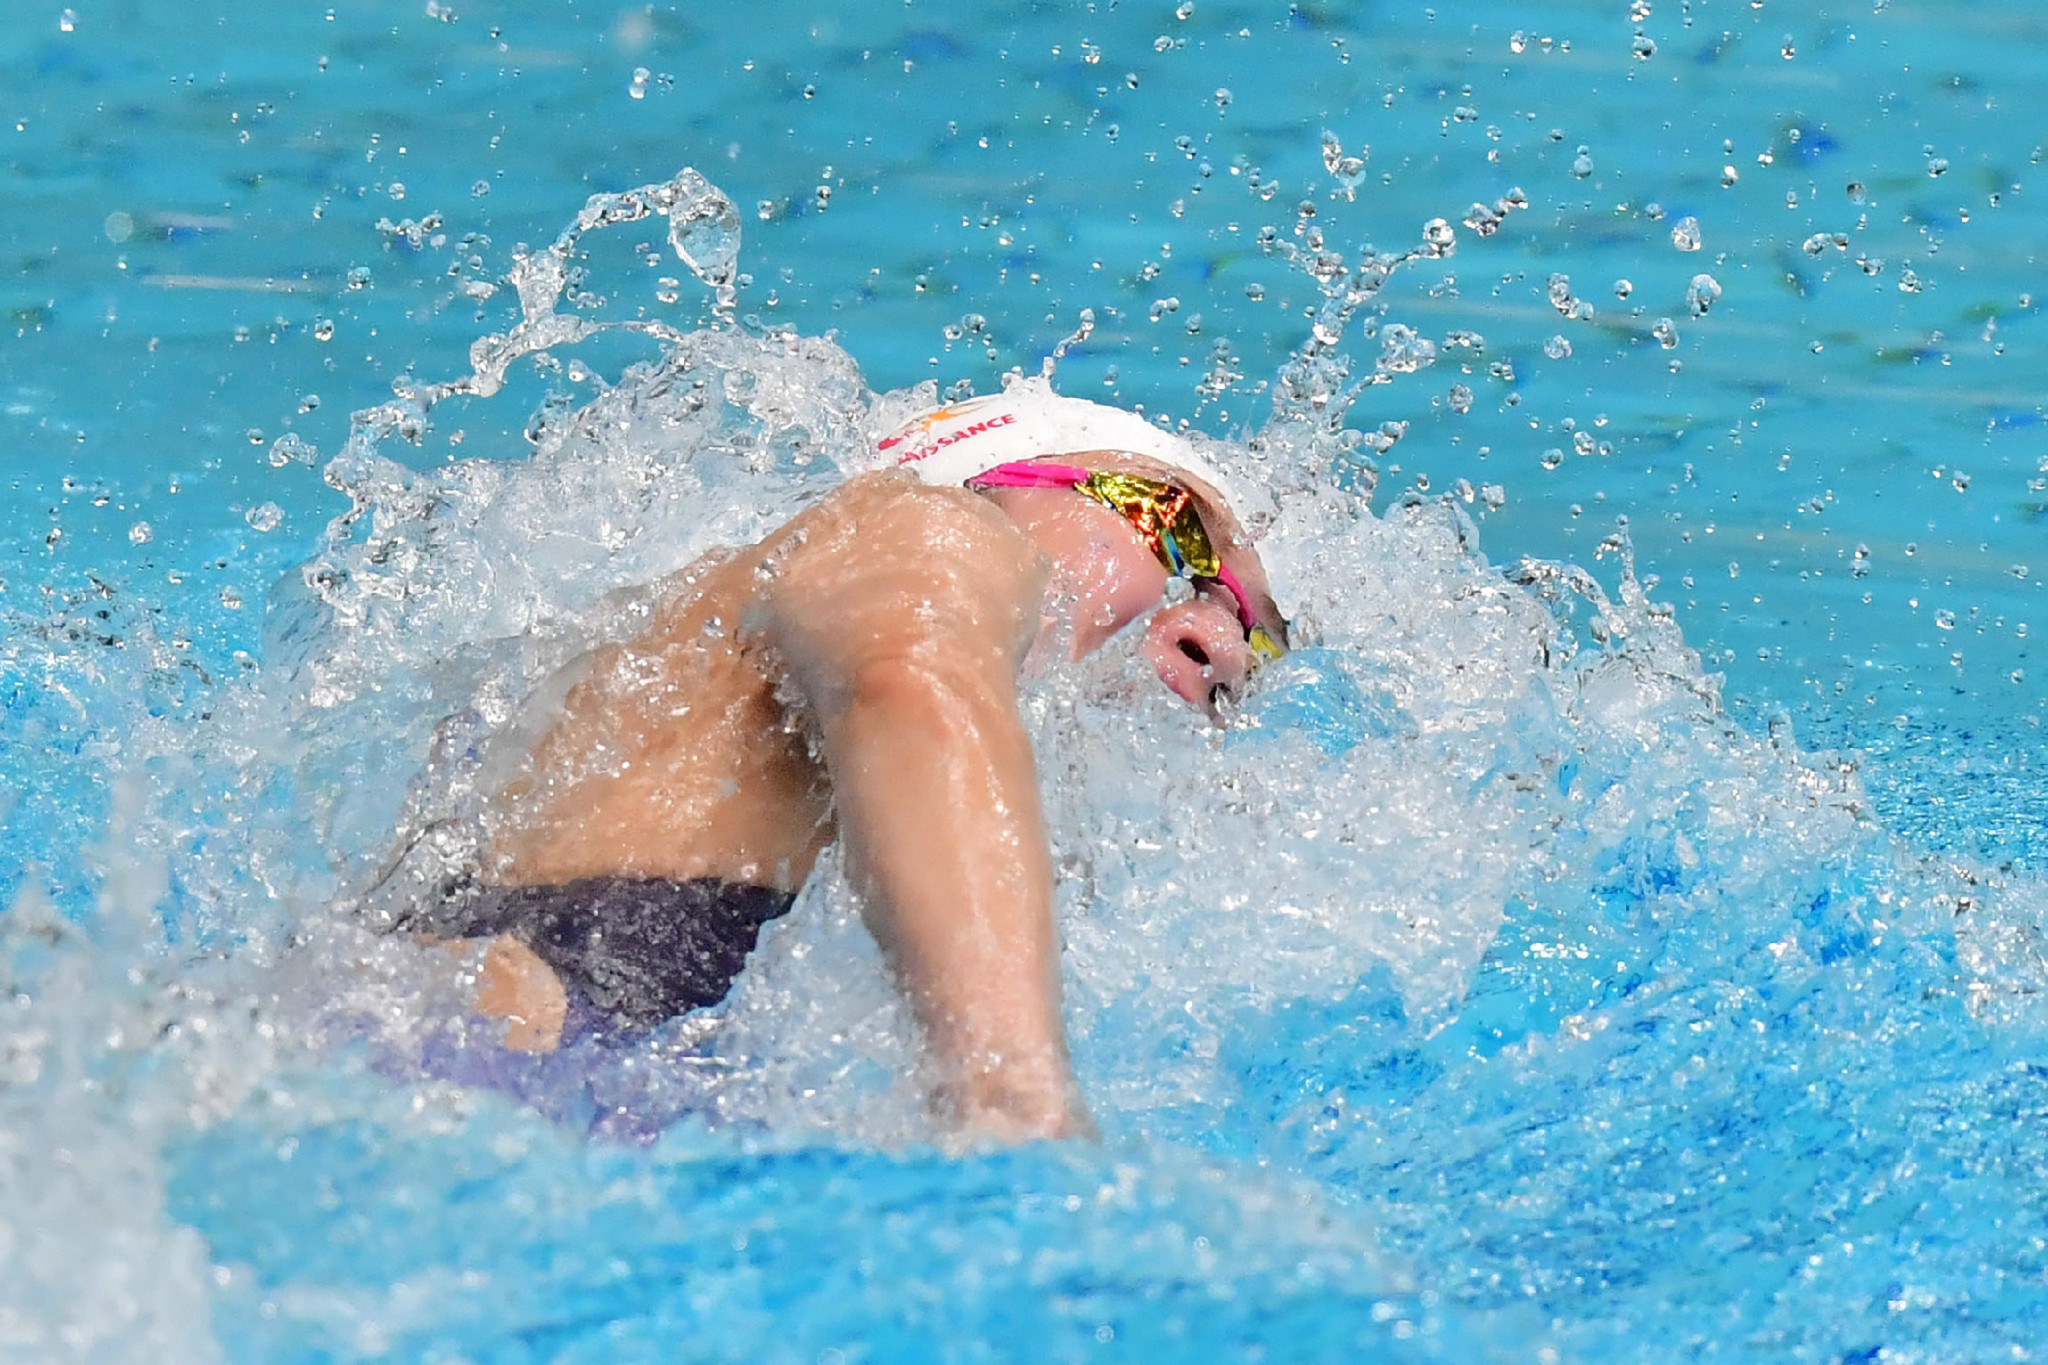 Rikako Ikee achieved a time of 26.32 seconds in the women's 50m freestyle event ©Getty Images